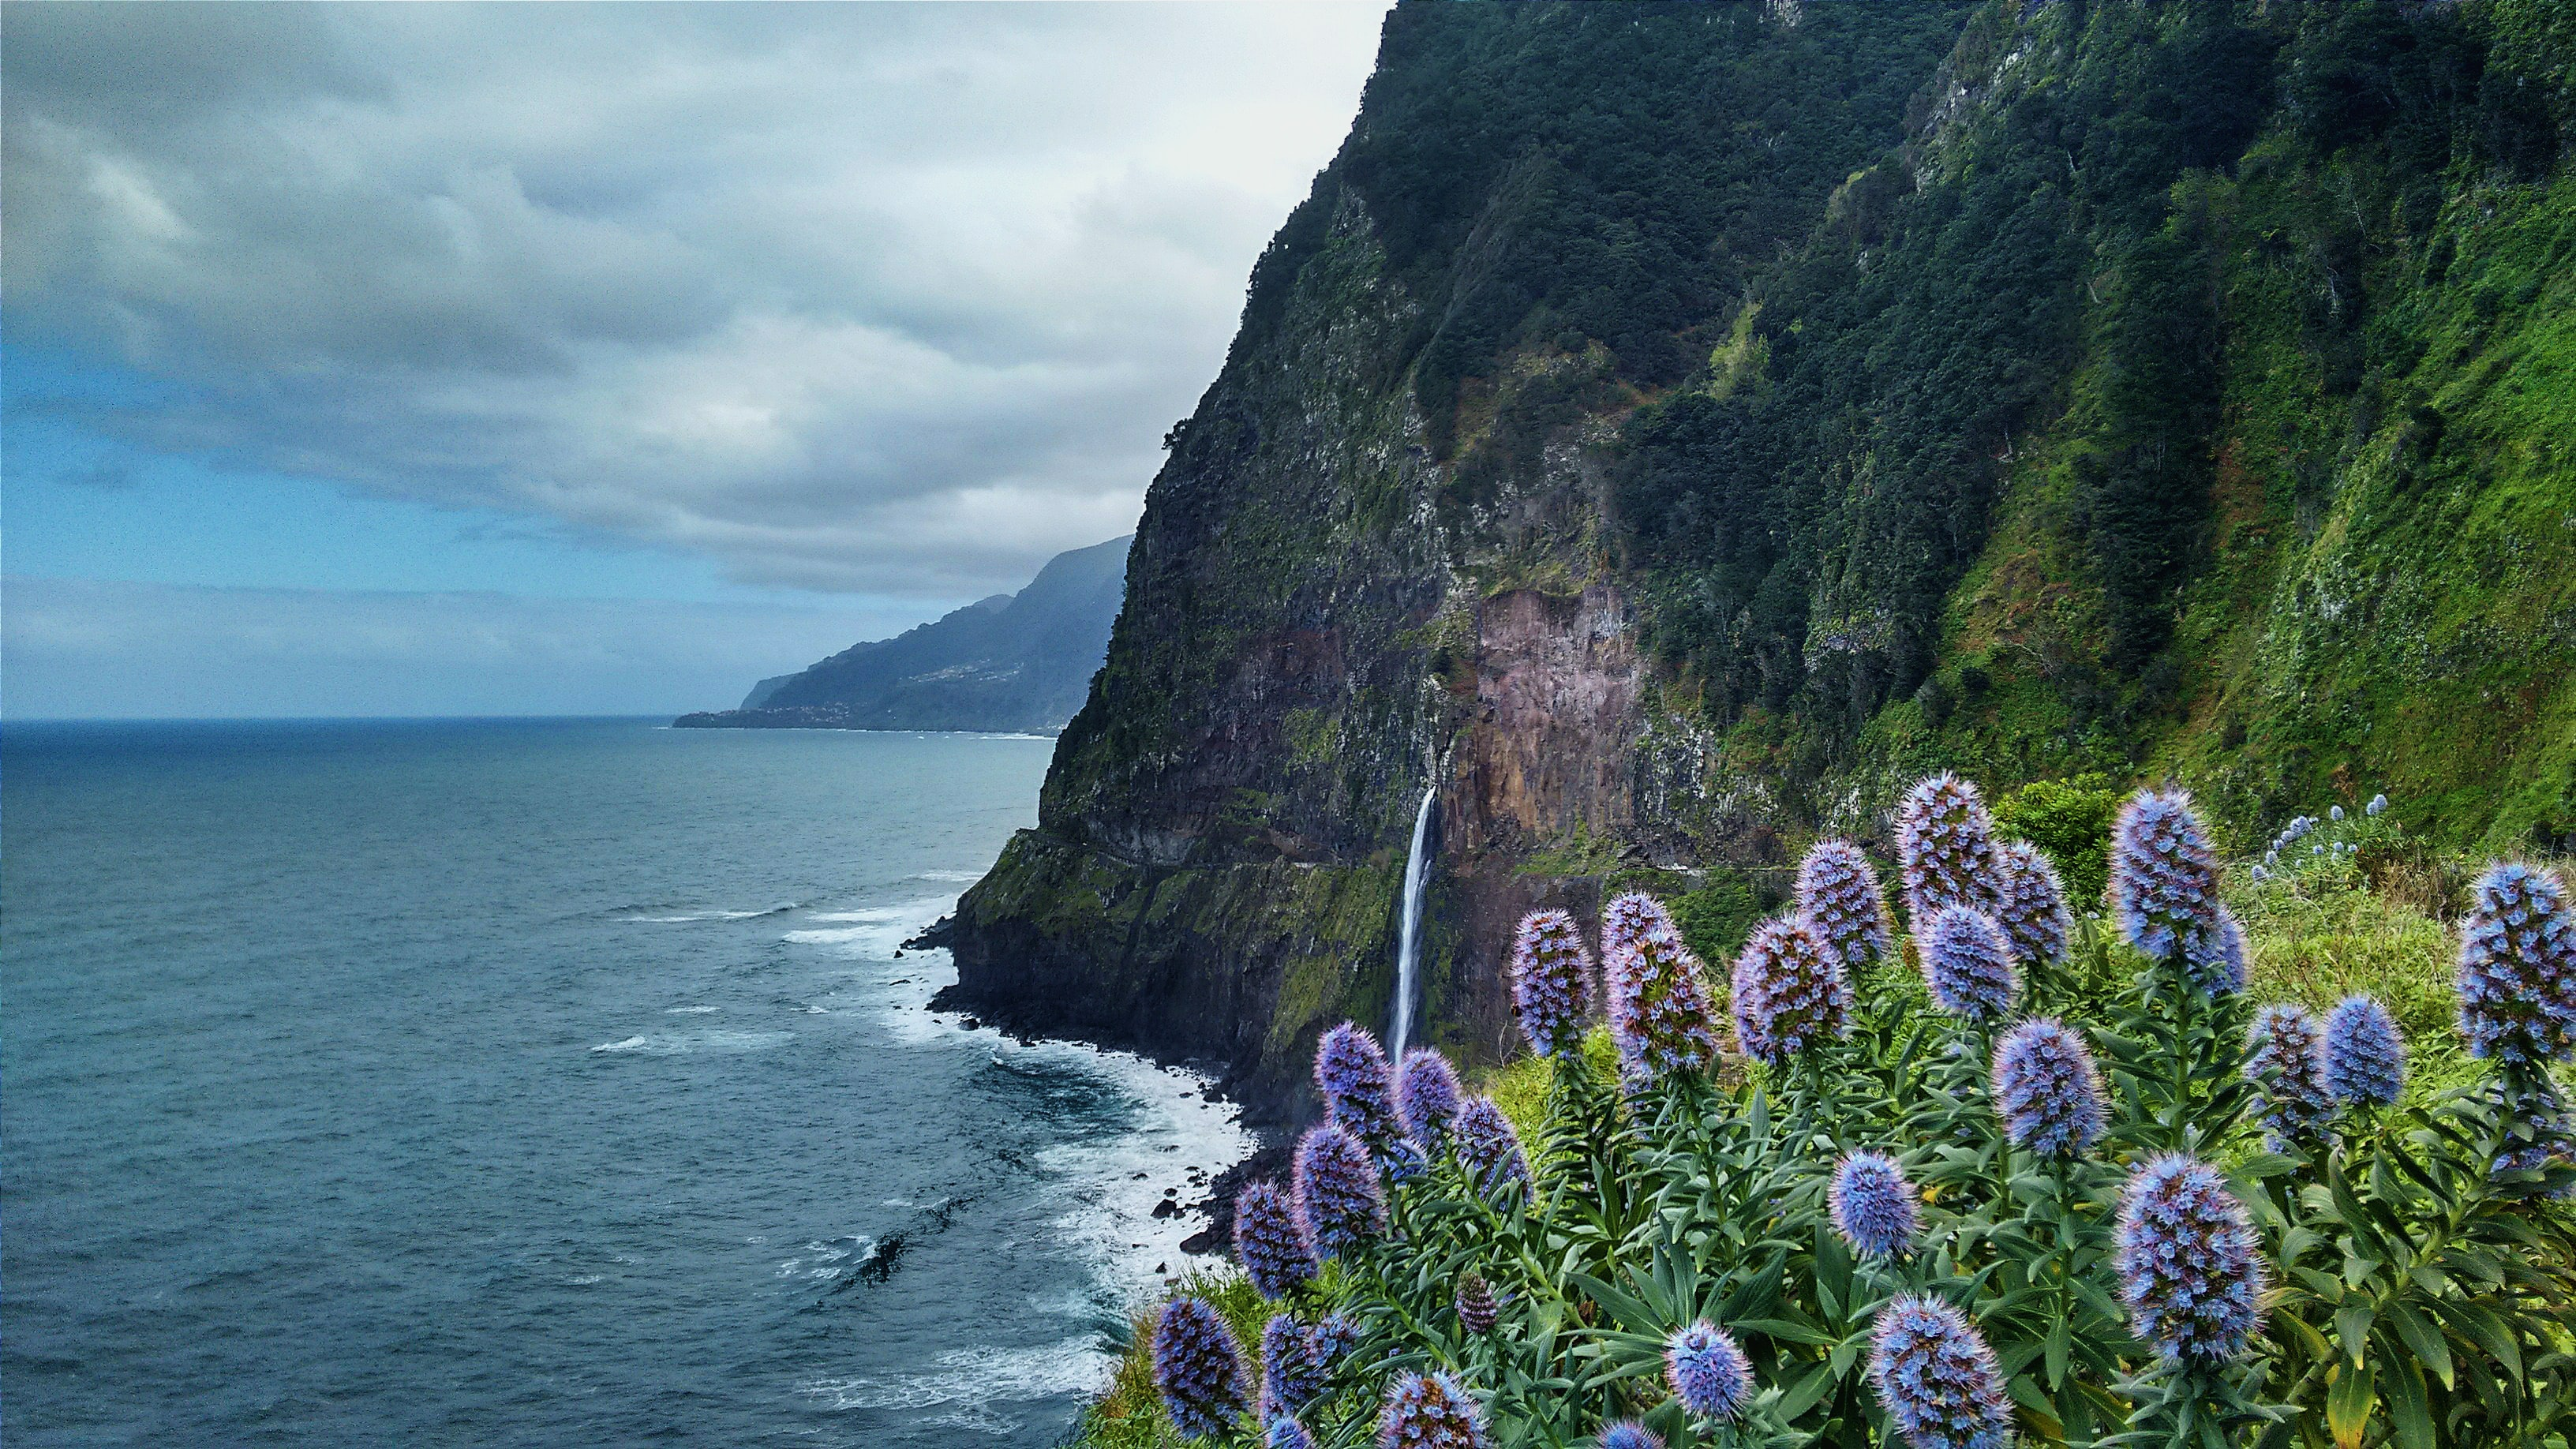 A dense patch of violet flowers on a cliff overlooking a choppy sea